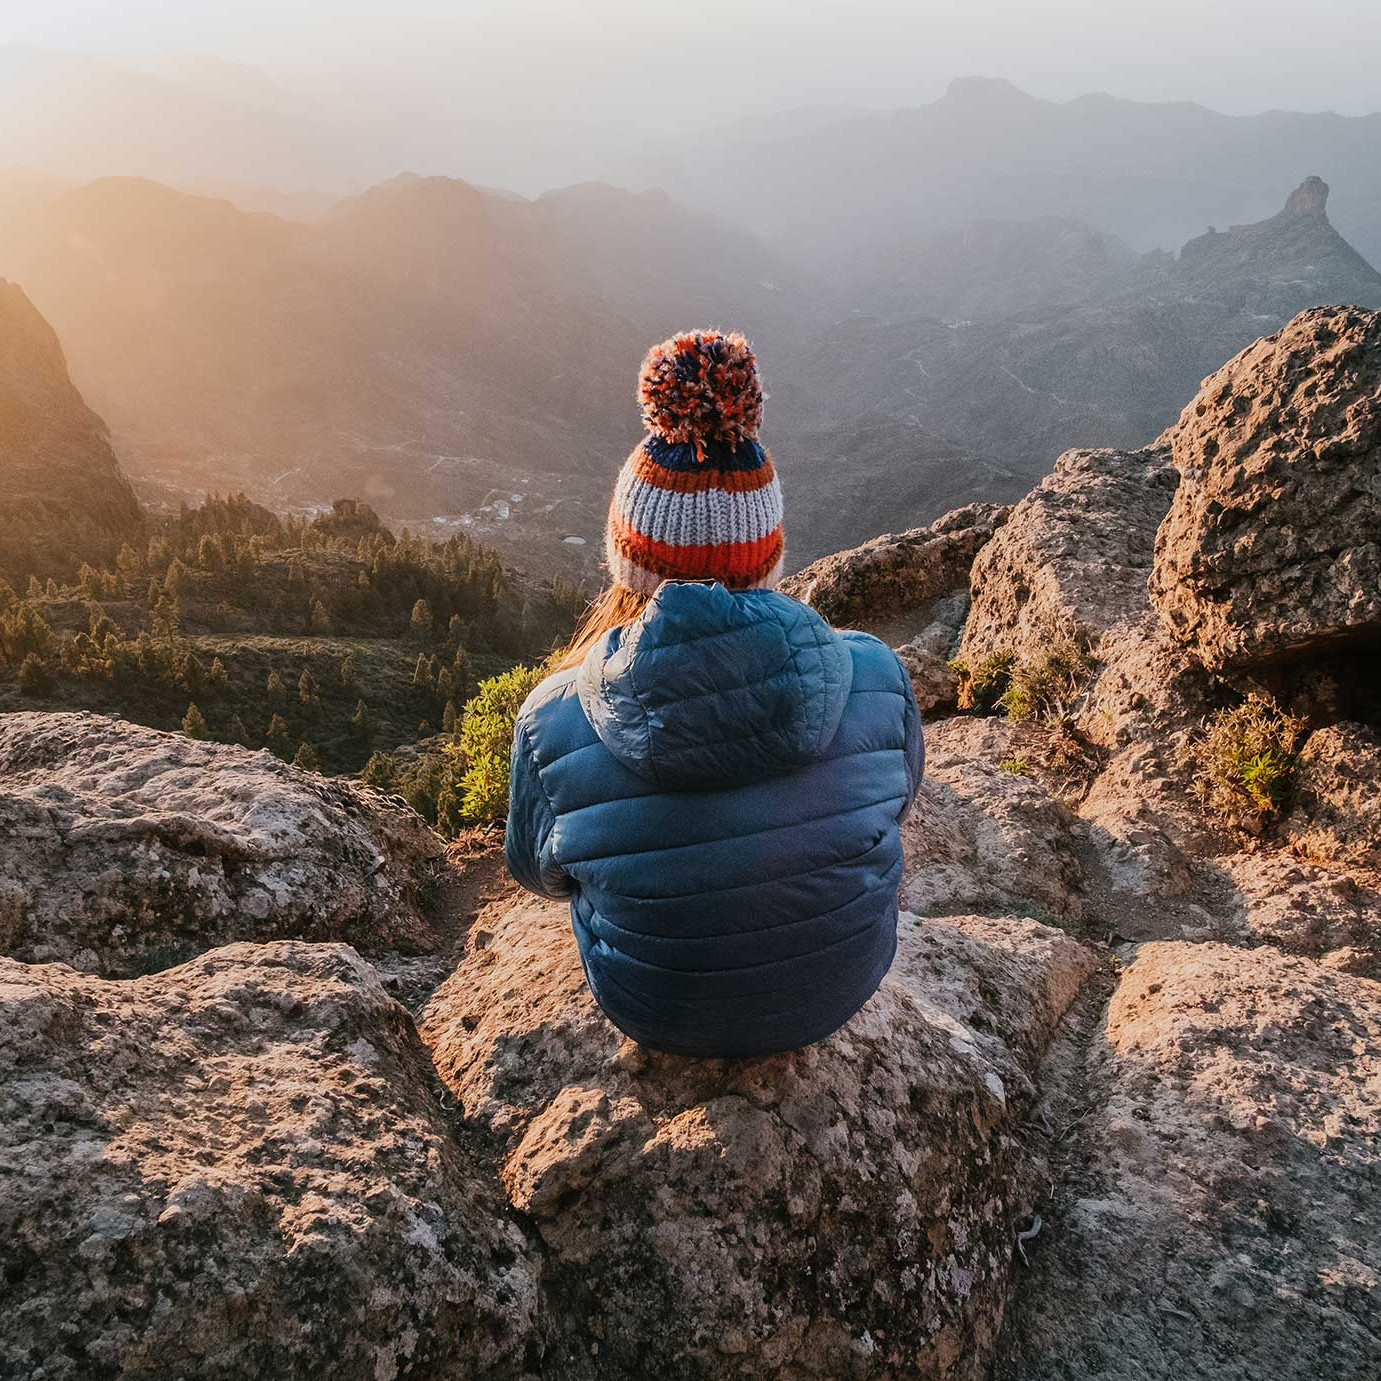 10 destinations for early retirement